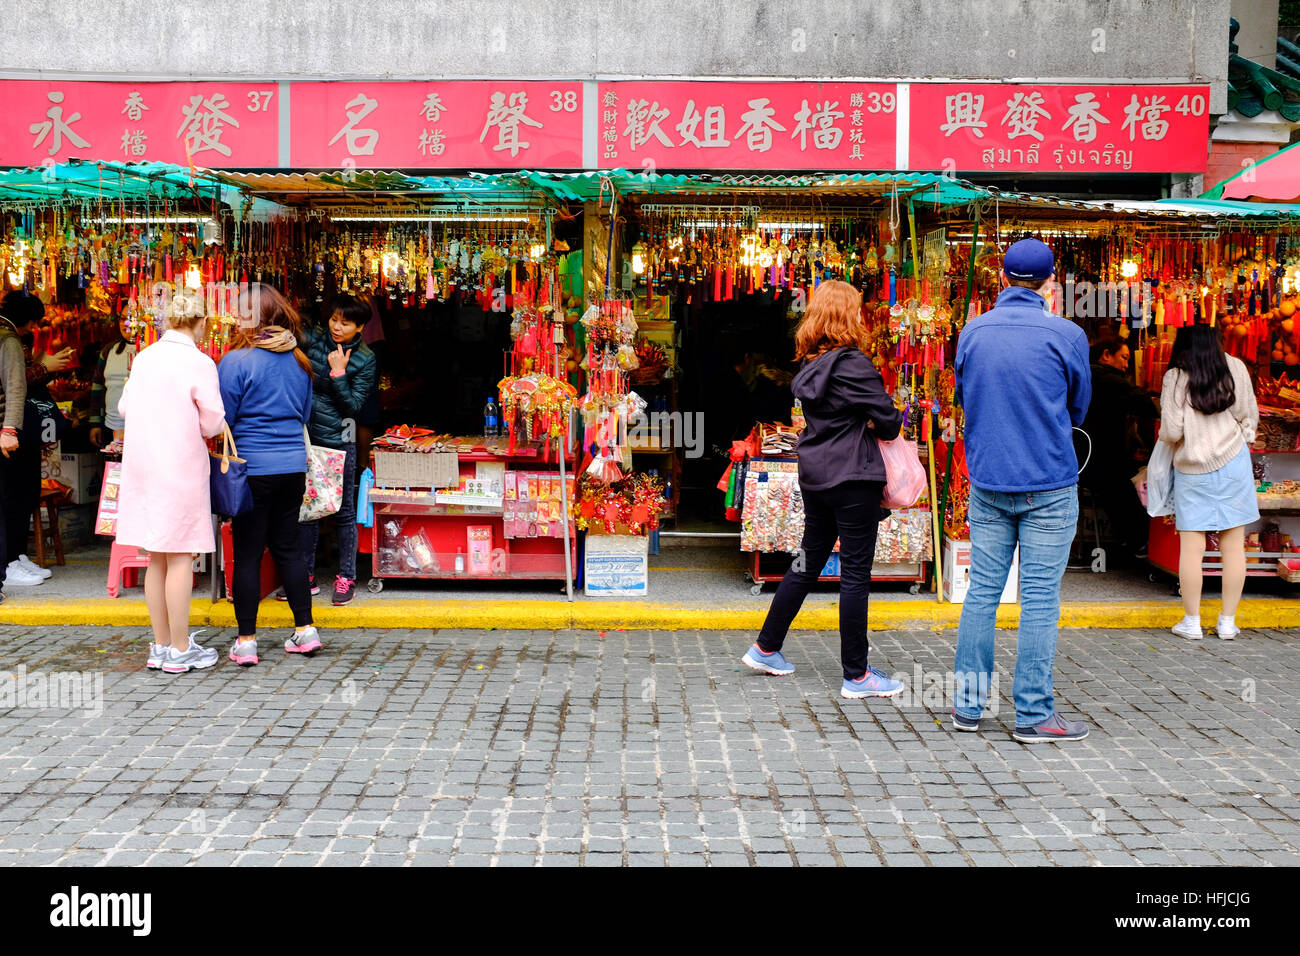 En dehors du marché de Sik Sik Yuen Wong Tai Sin Temple, Kowloon, Hong Kong. Photo Stock